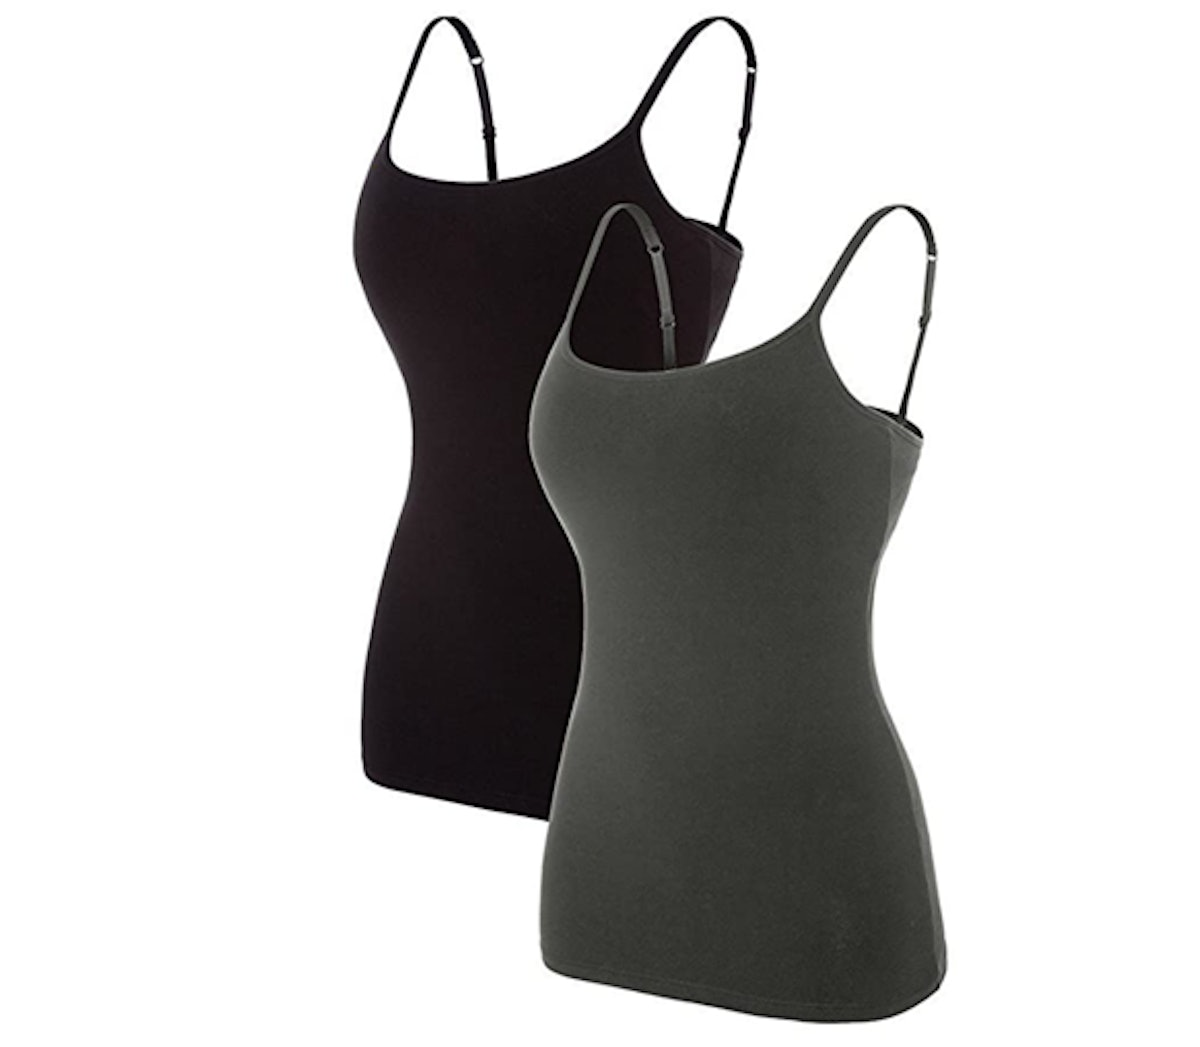 ATTRACO Cami (2-Pack)